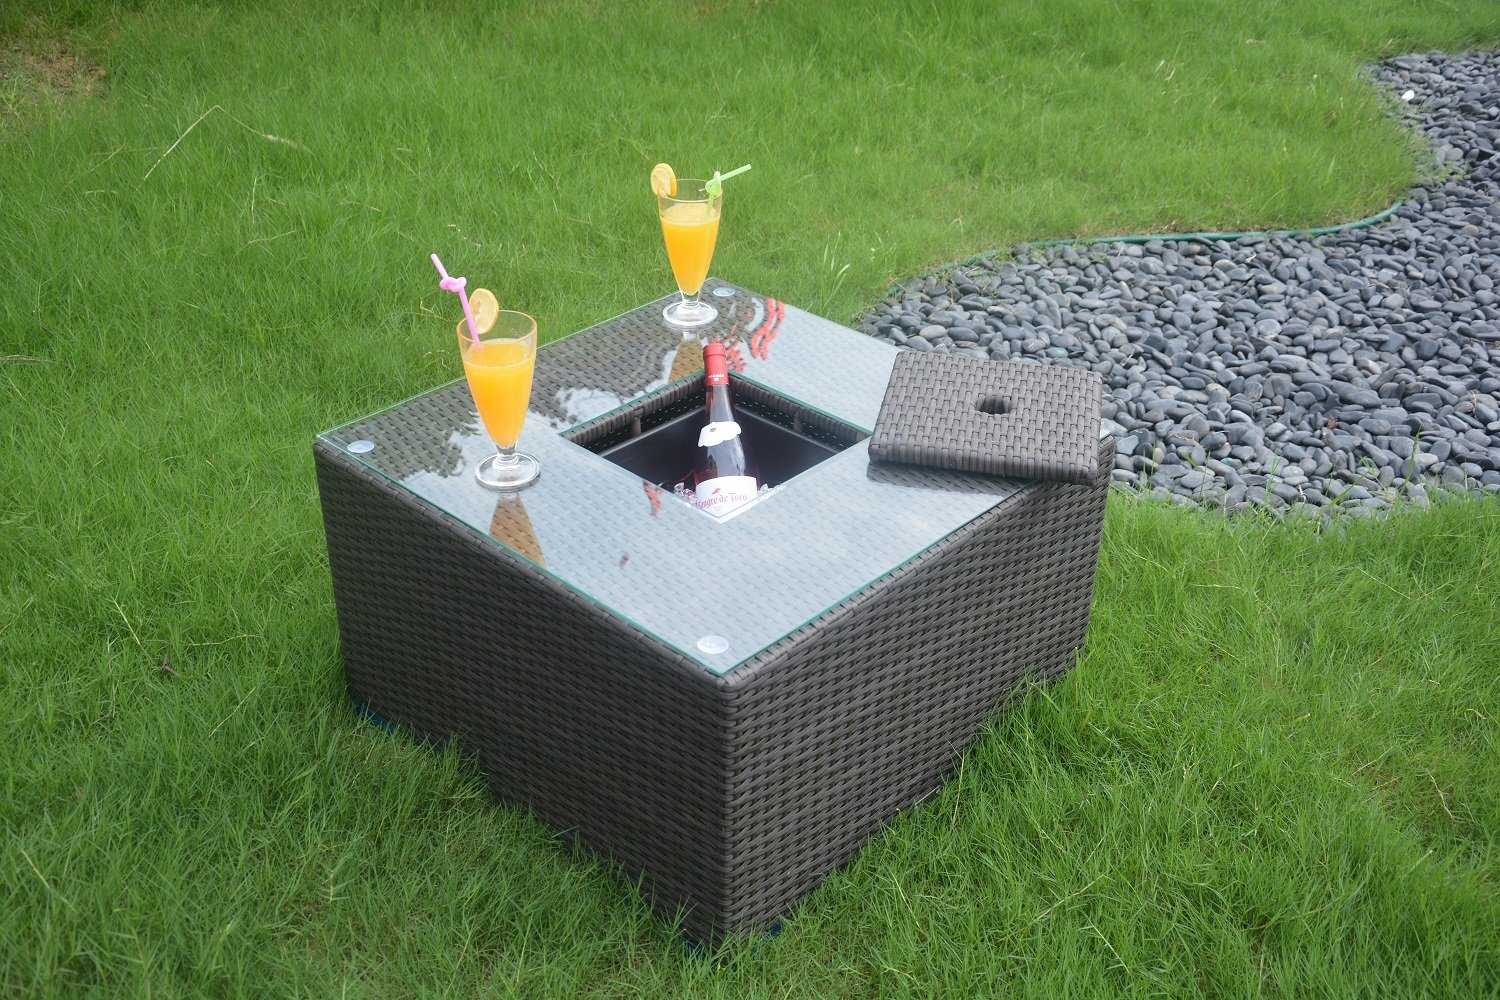 Direct Wicker Outdoor Square Cooler Table Patio Wicker Bar Table with Ice Bucket-Black Wicker